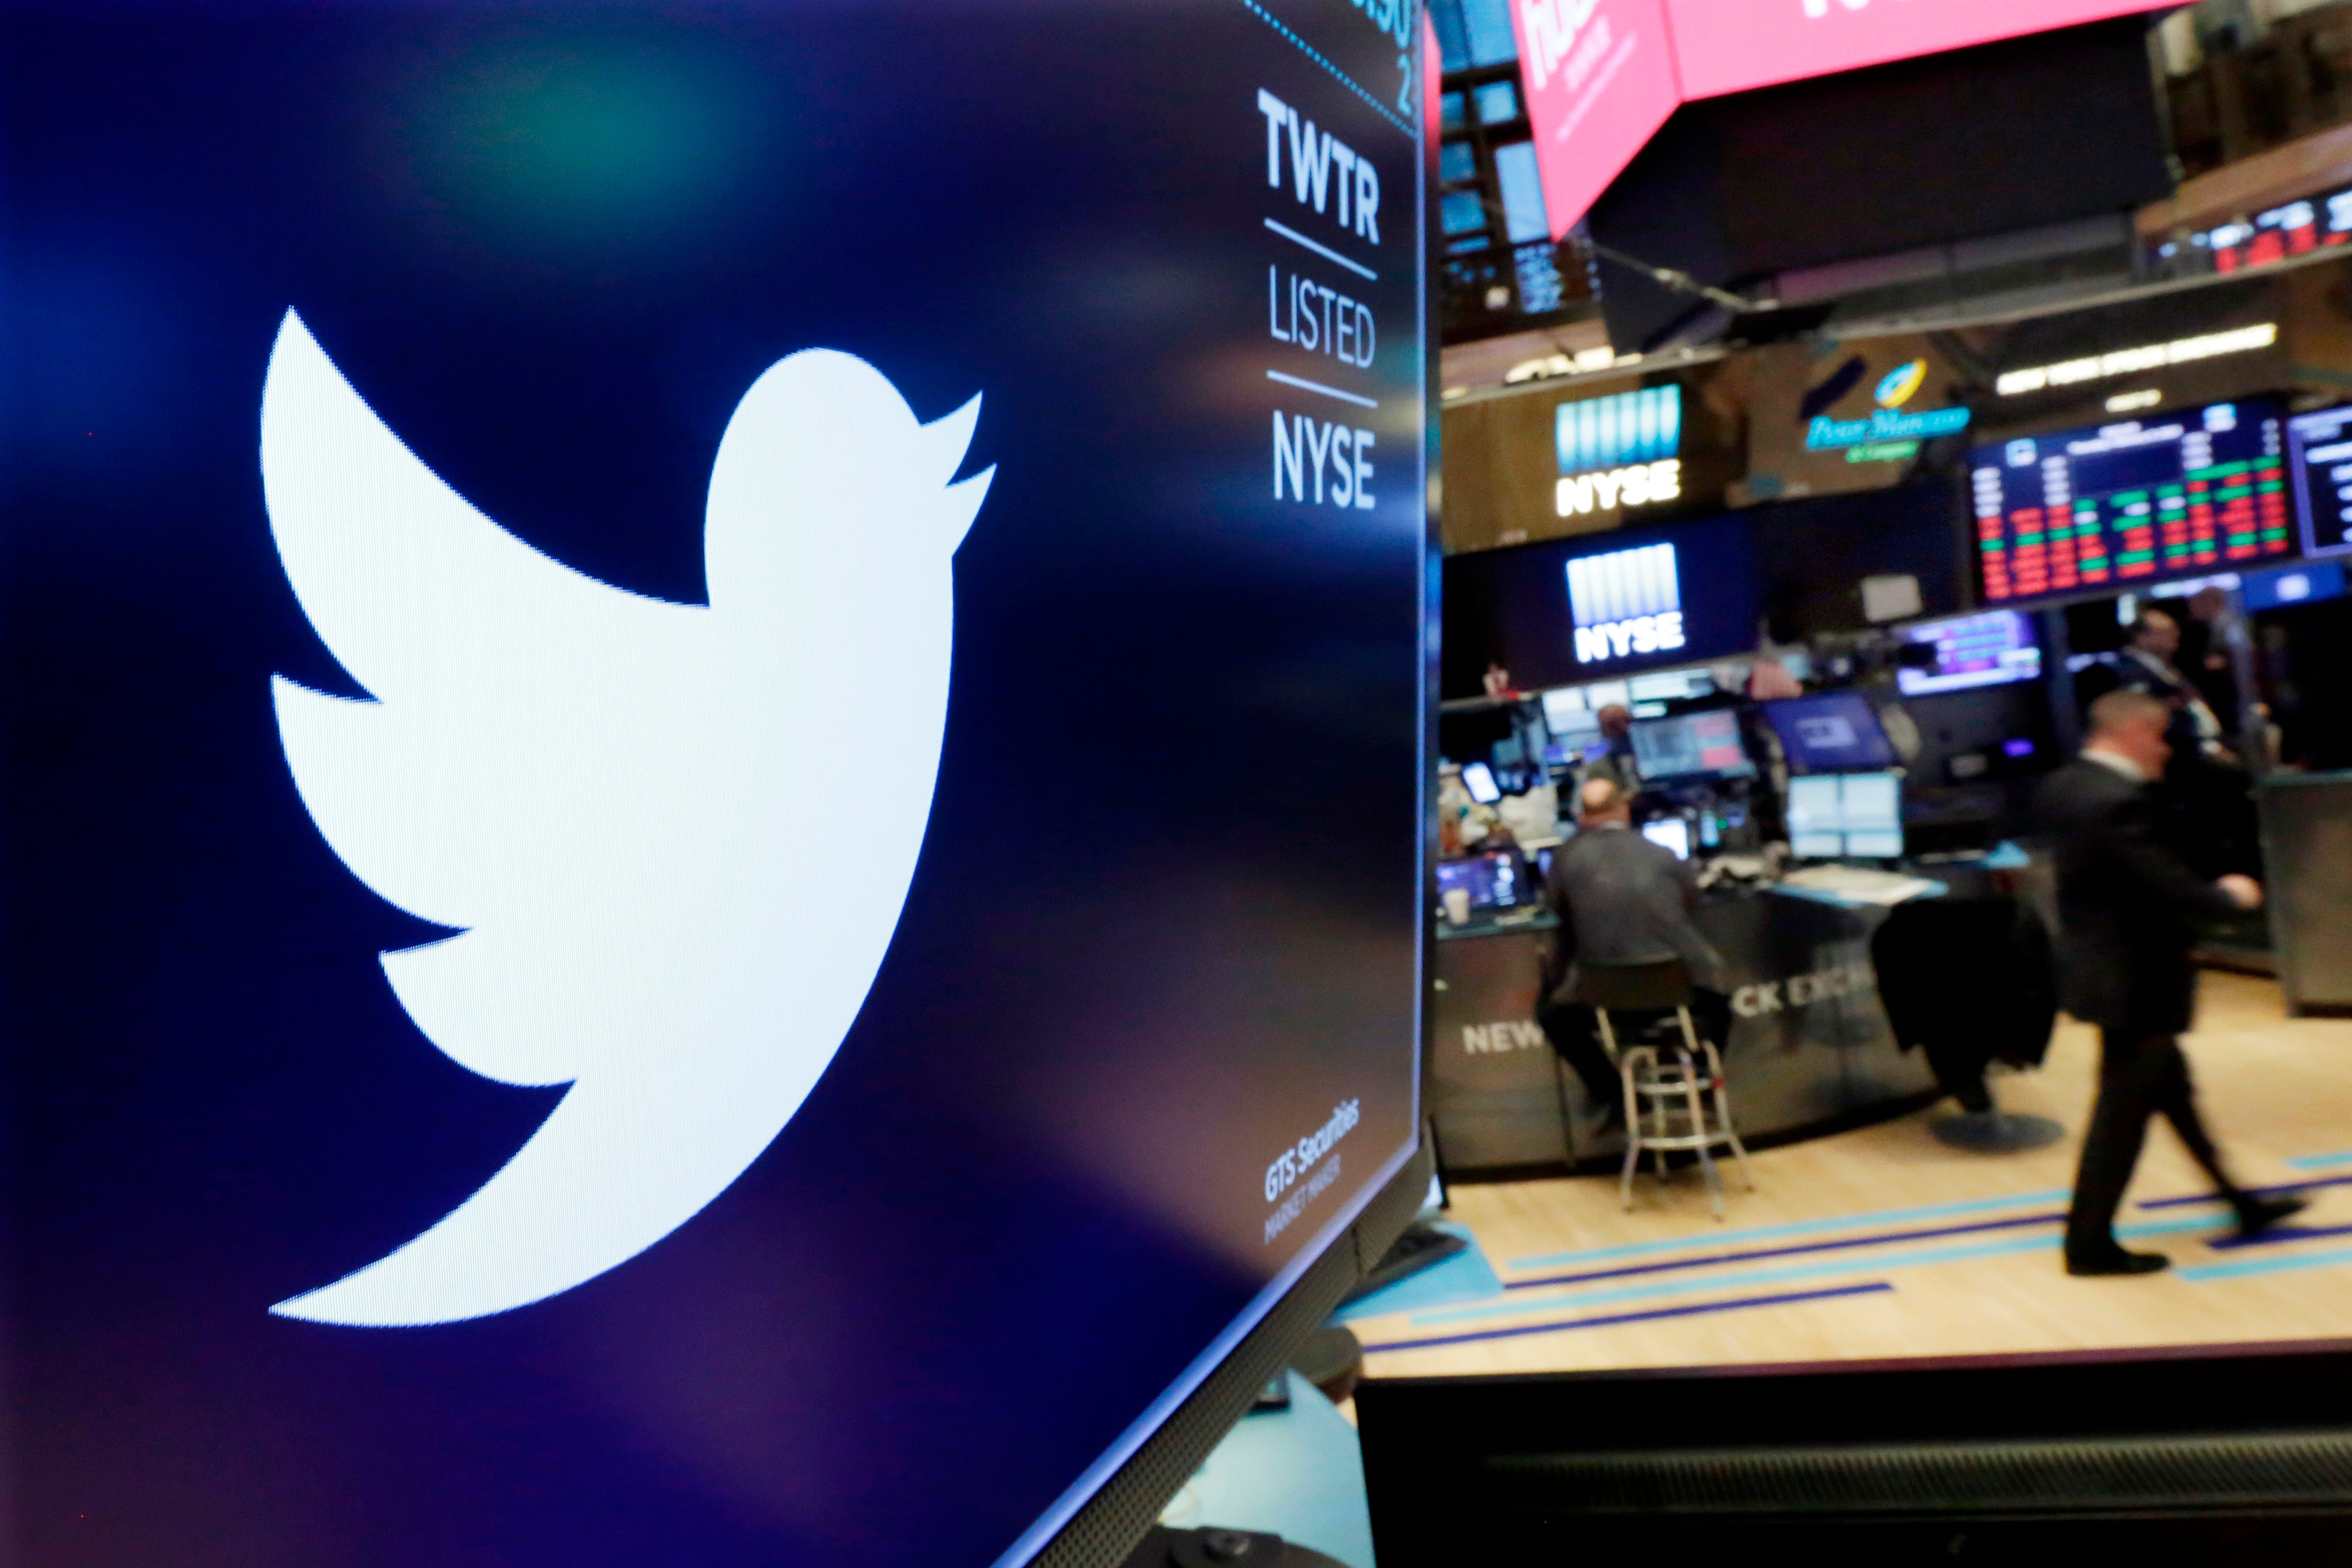 Twitter hack reveals national security threat as election approaches